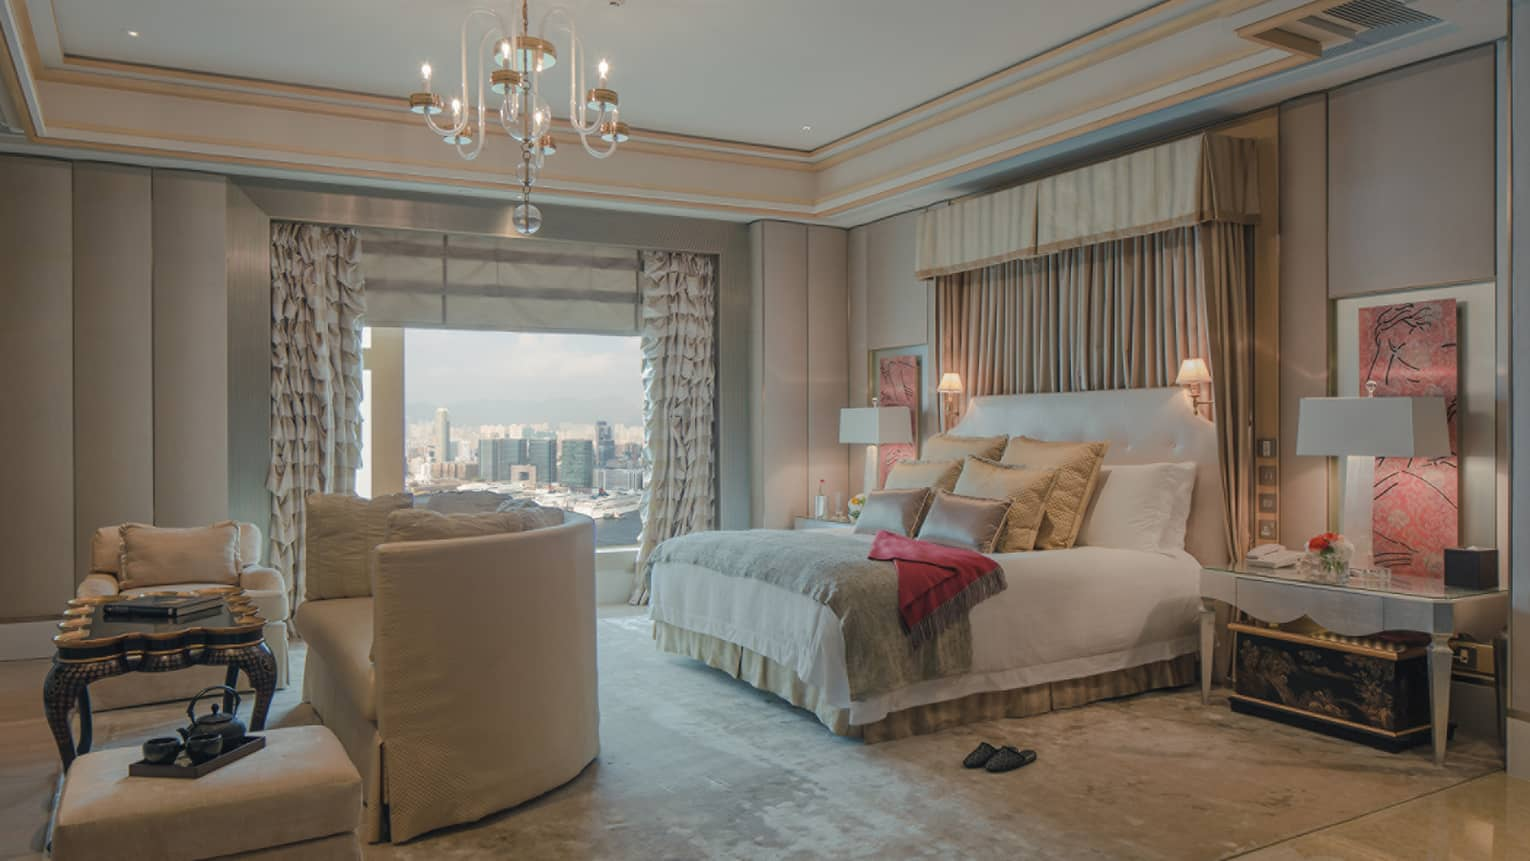 Spacious Hong Kong hotel room bed with curtains above headboard, crystal chandelier, curved loveseat